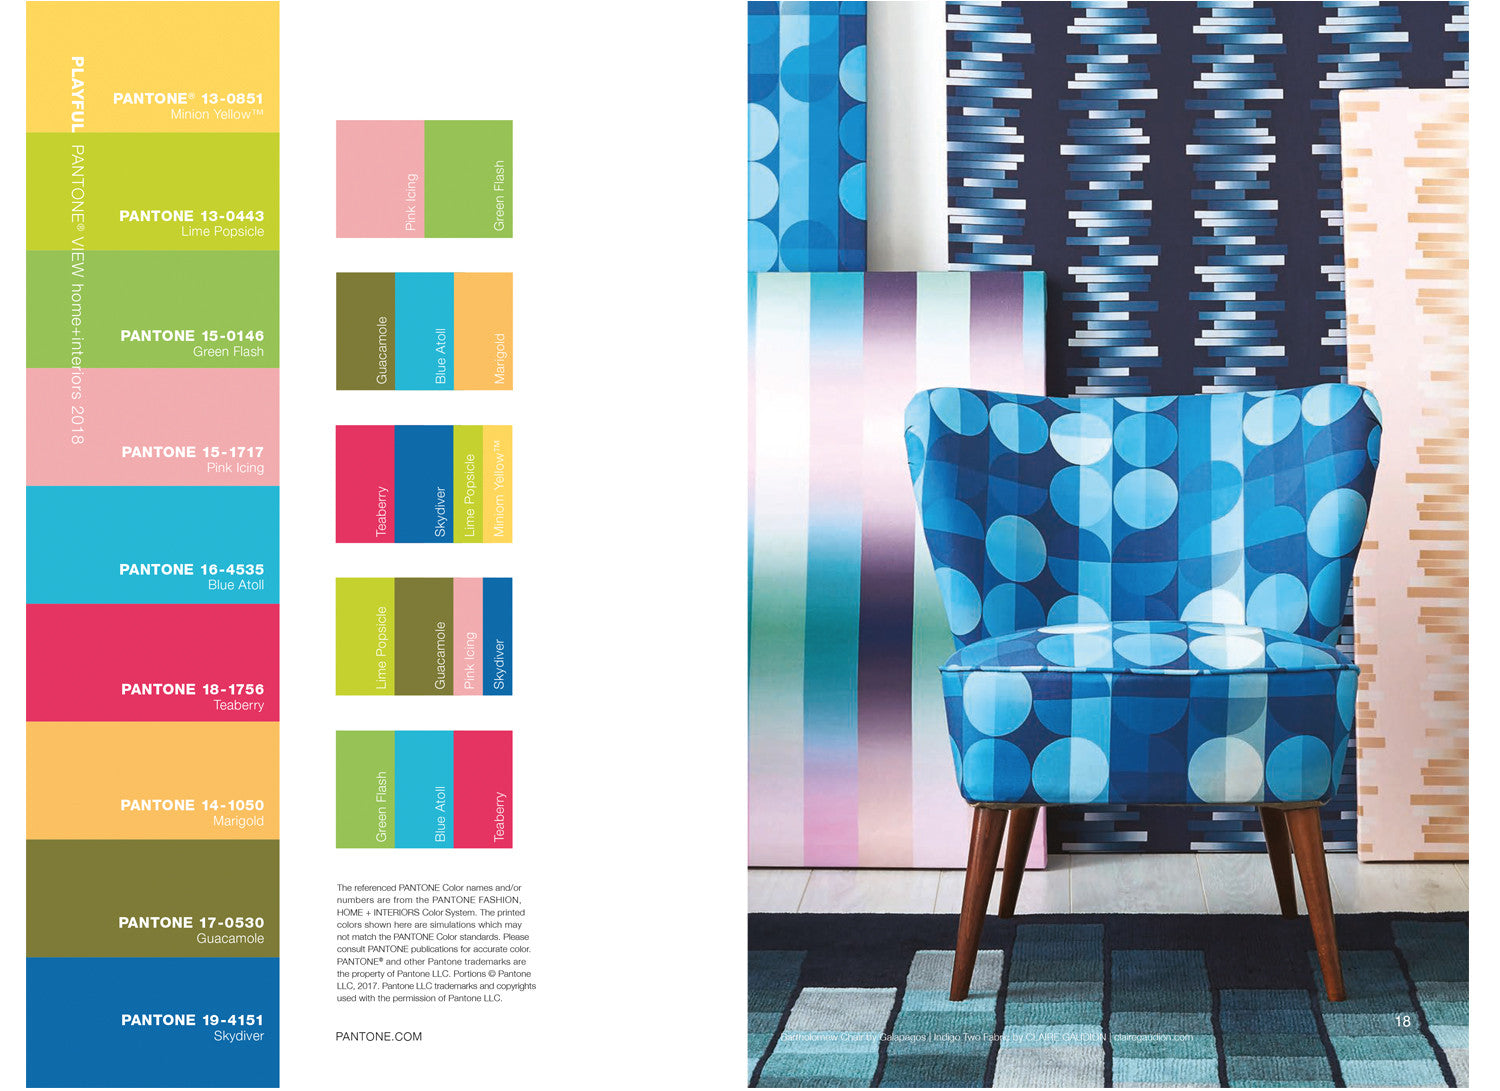 Pantone View featuring Claire Gaudion